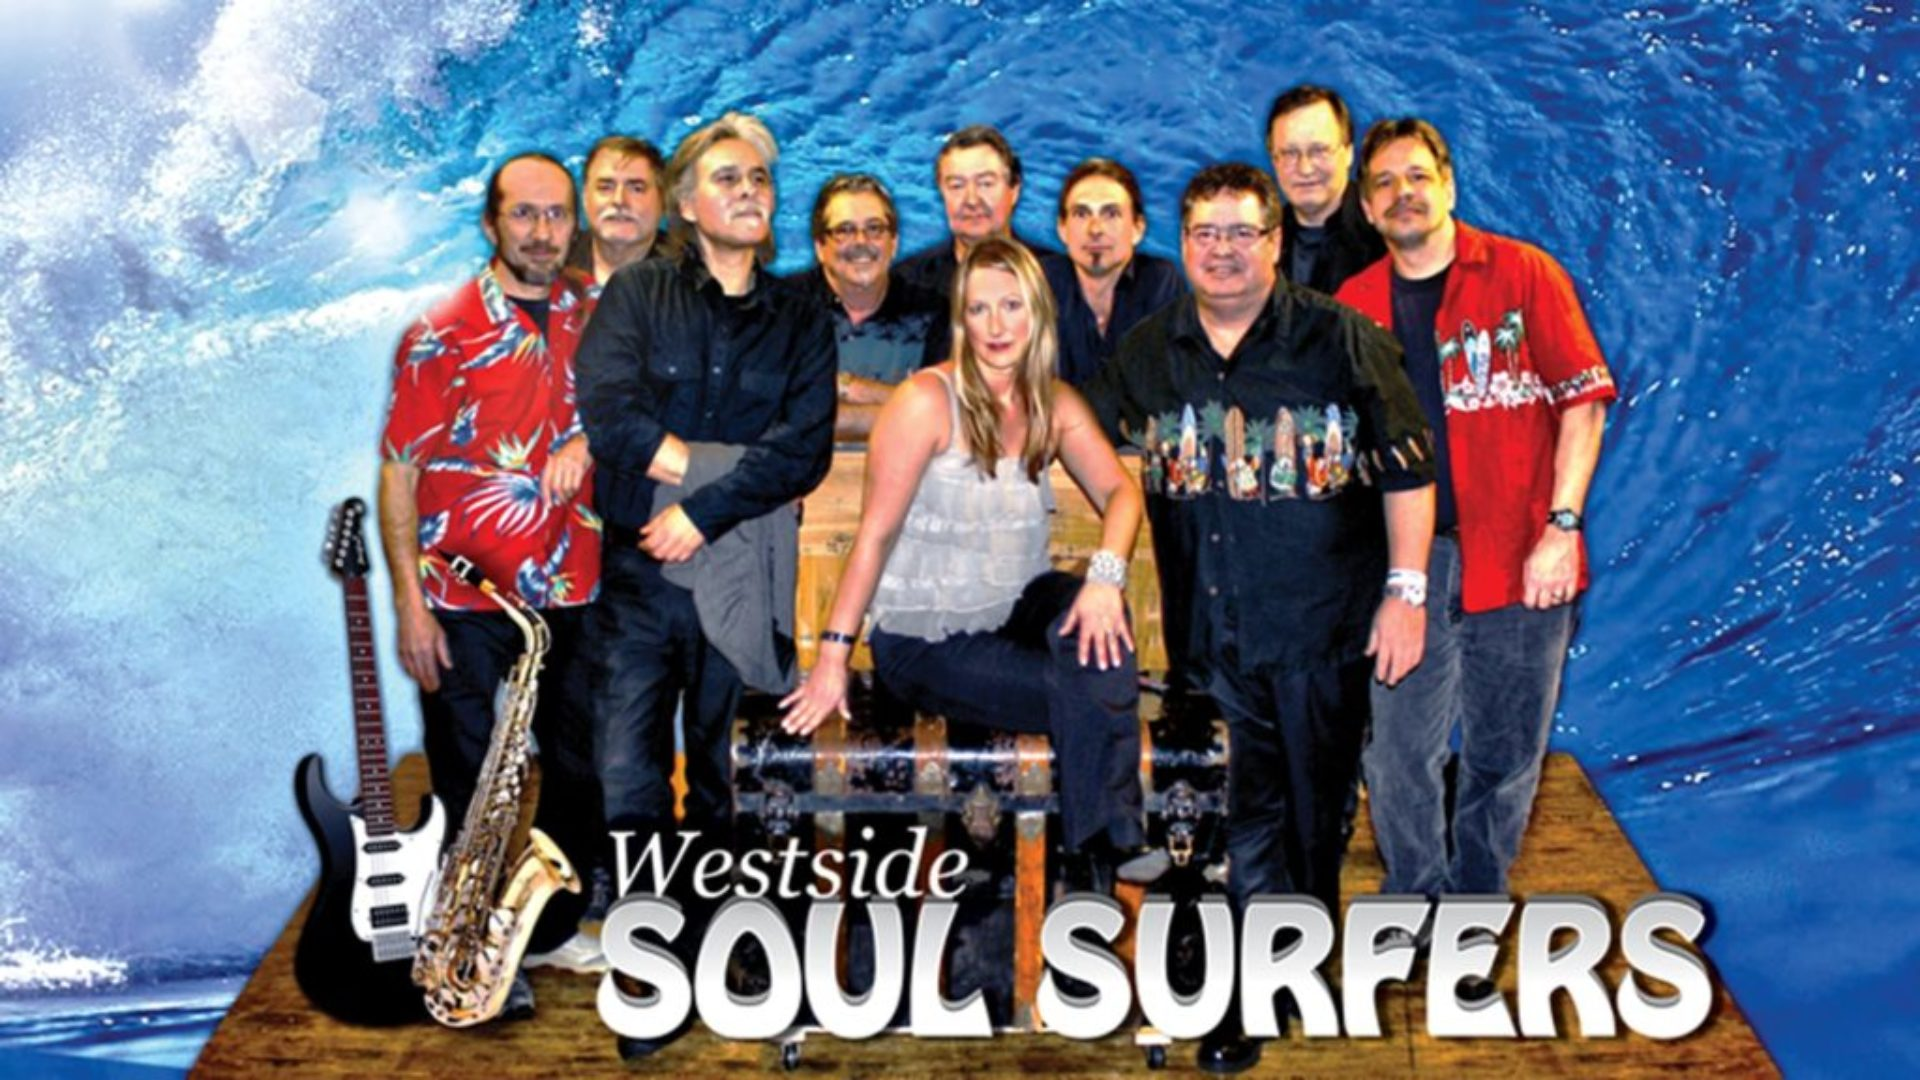 Westside Soul Suffers